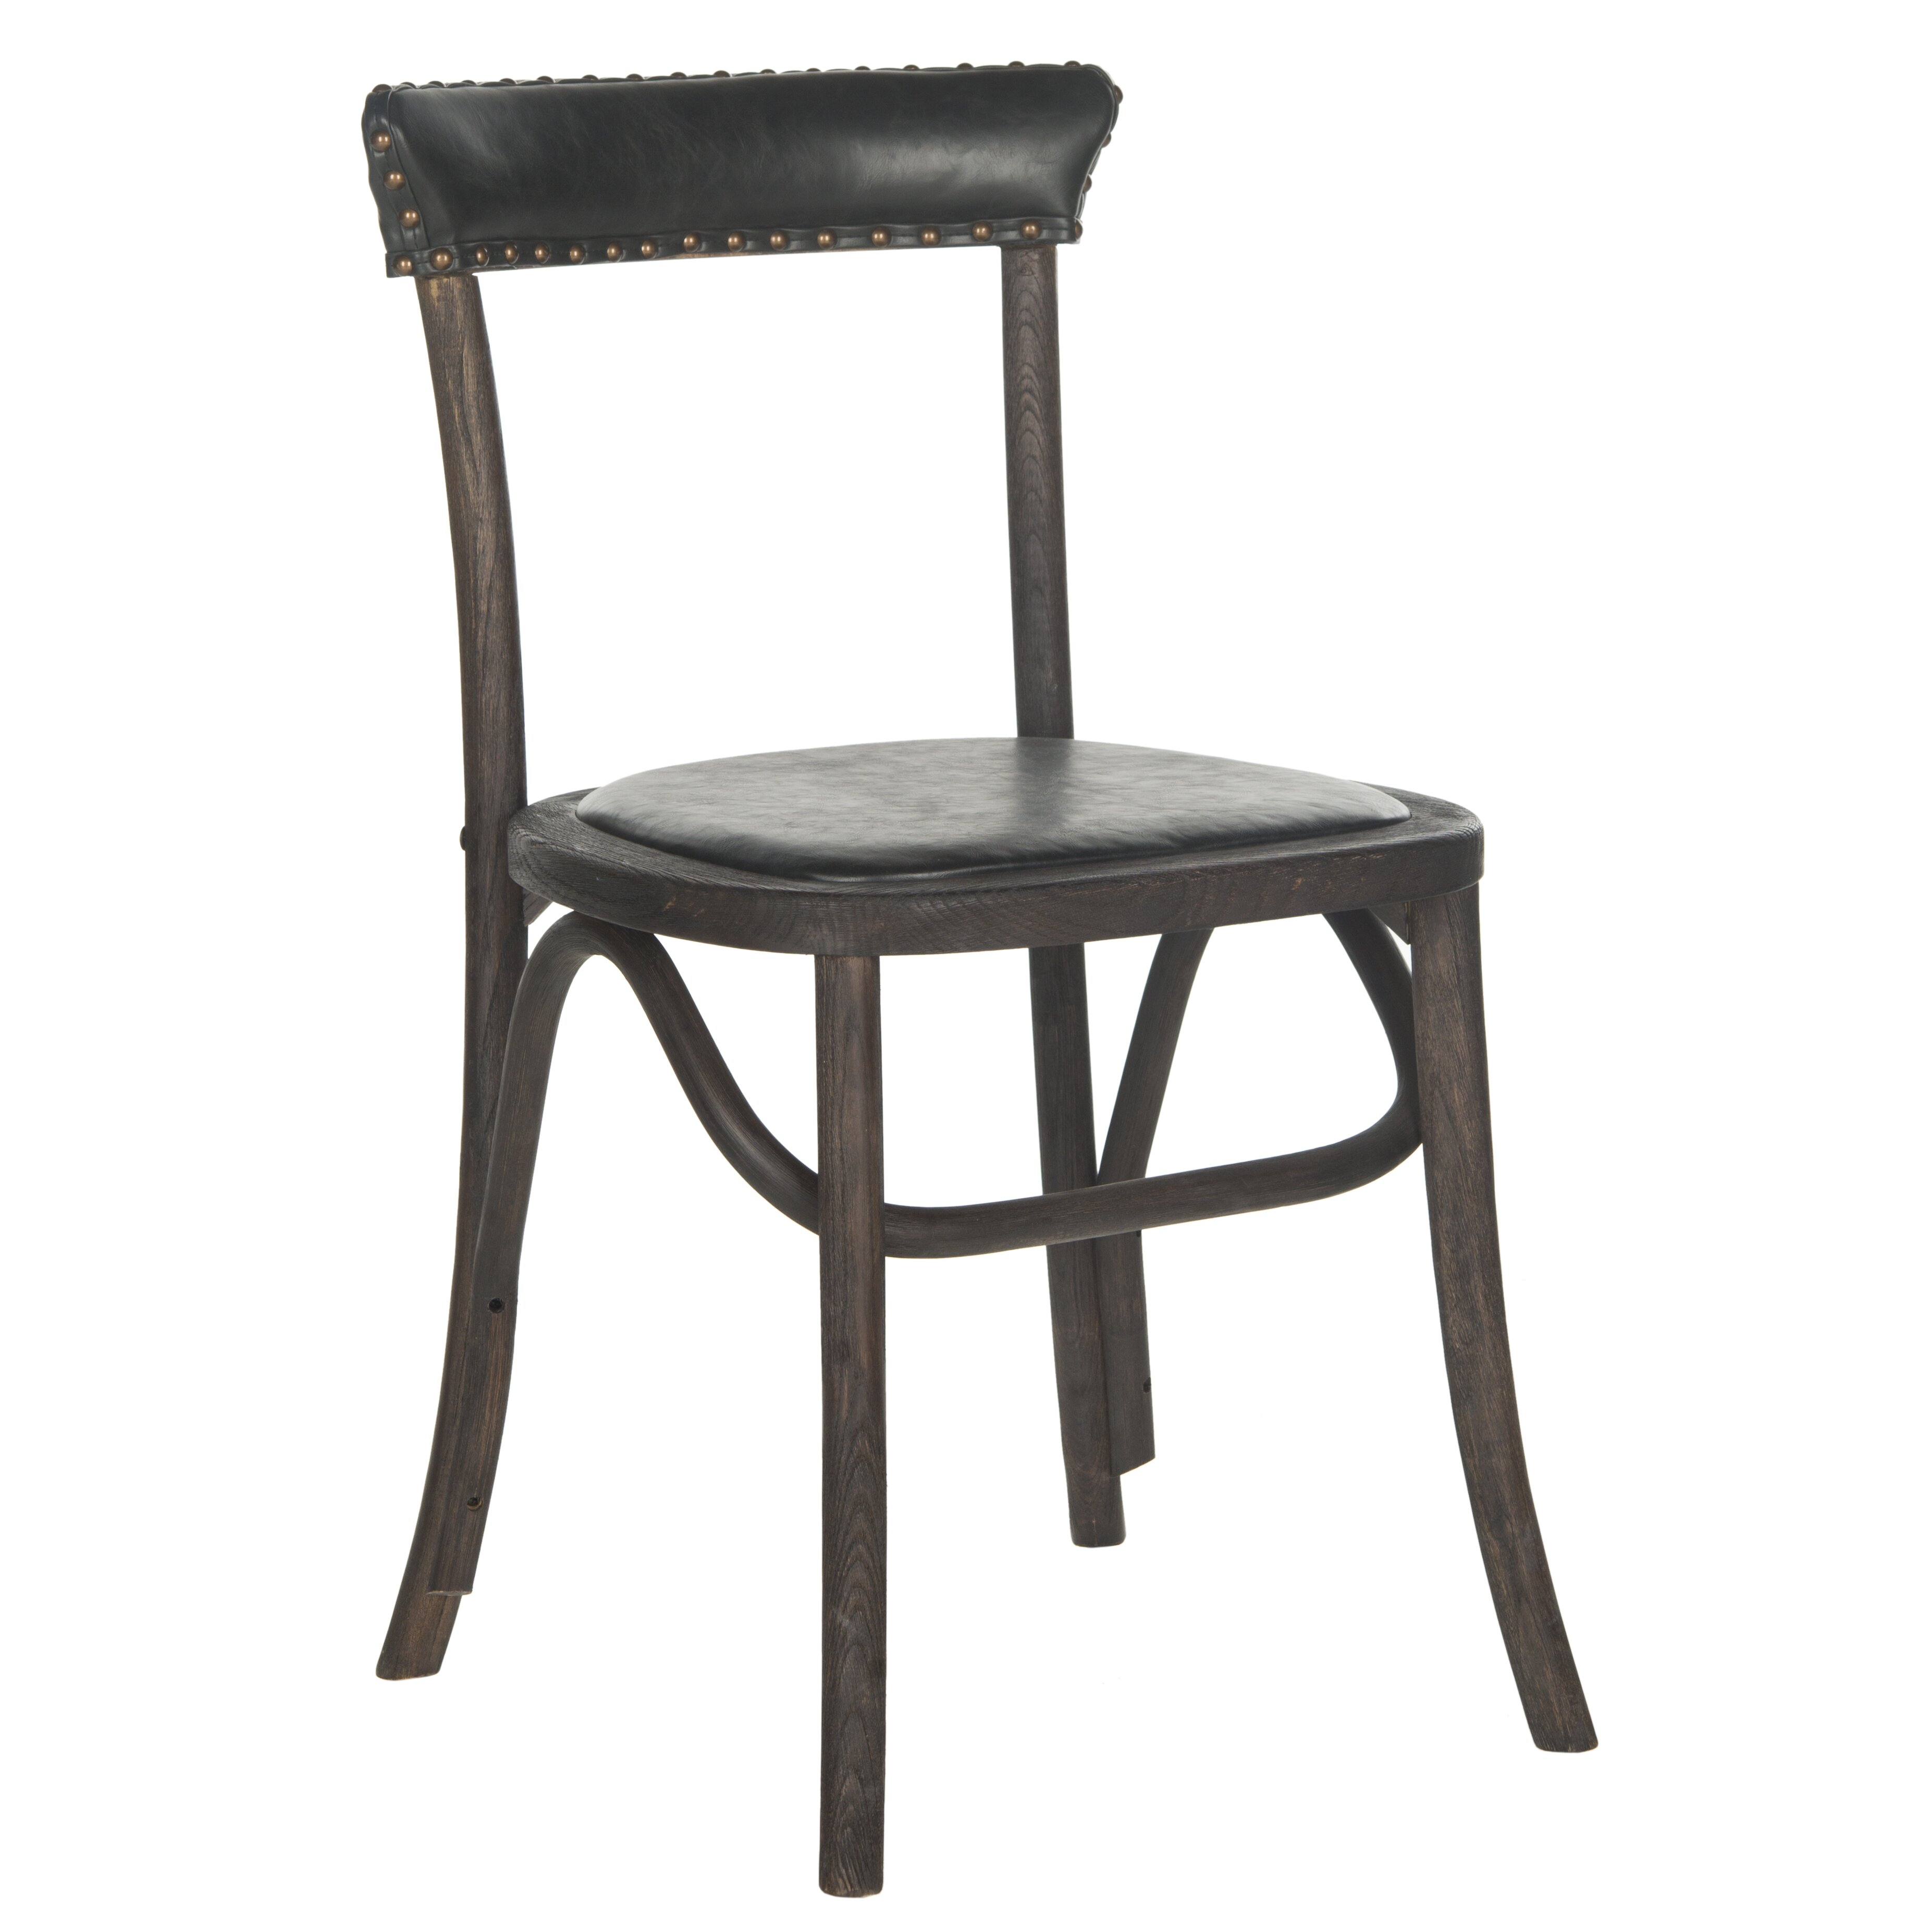 Safavieh mercer kenny side chair reviews wayfair - Safavieh dining room chairs ideas ...